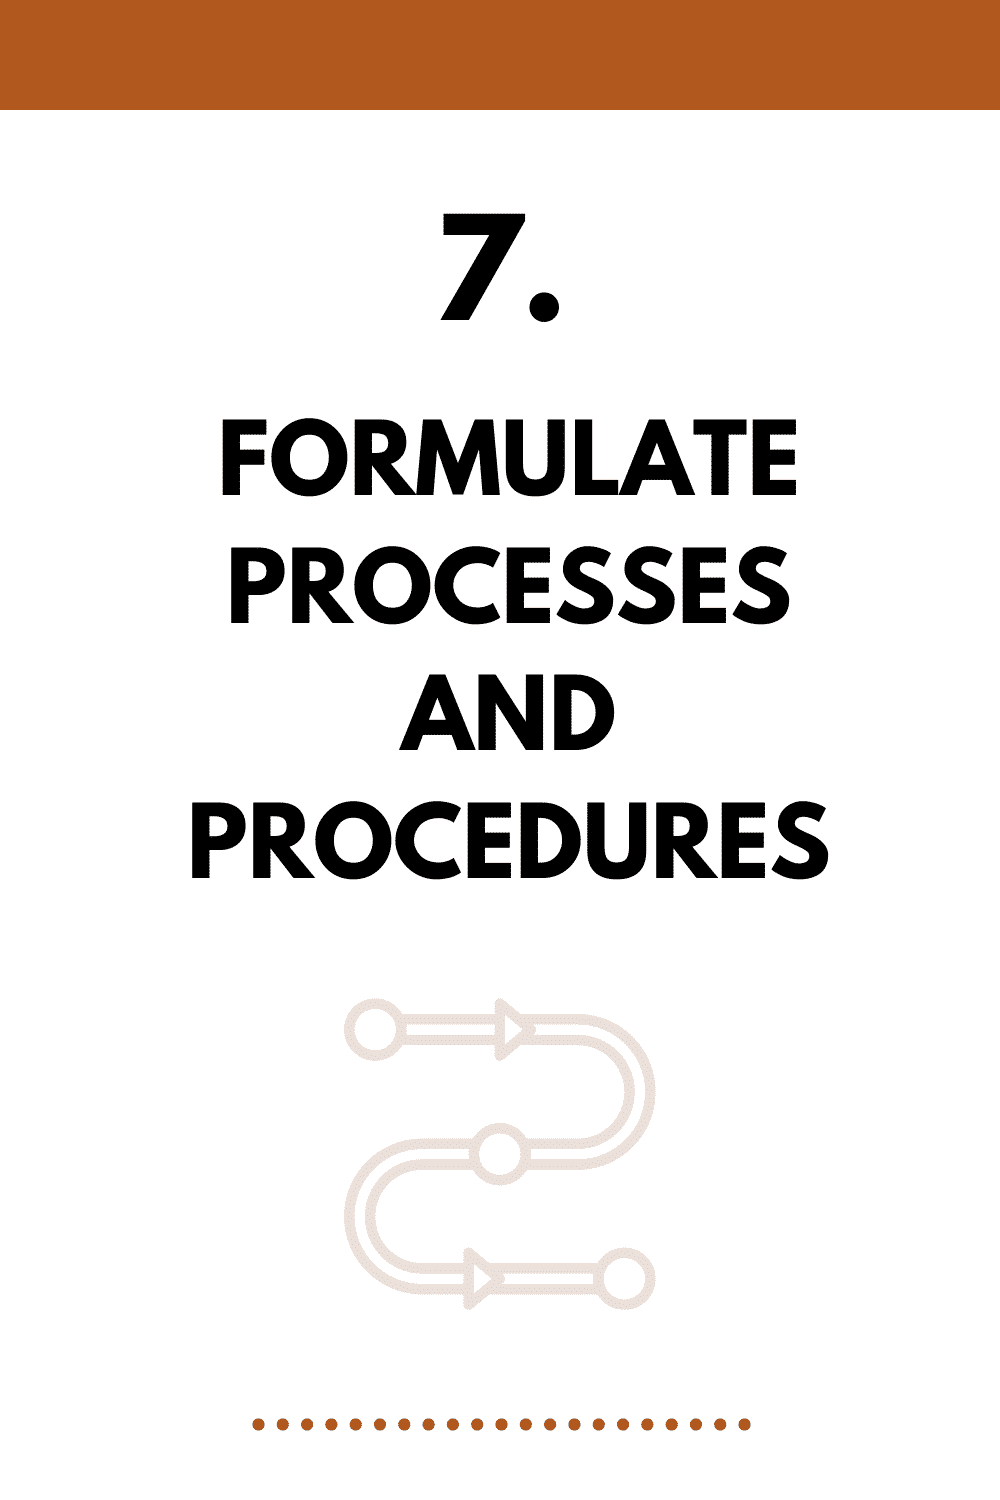 Formulate processes and procedures